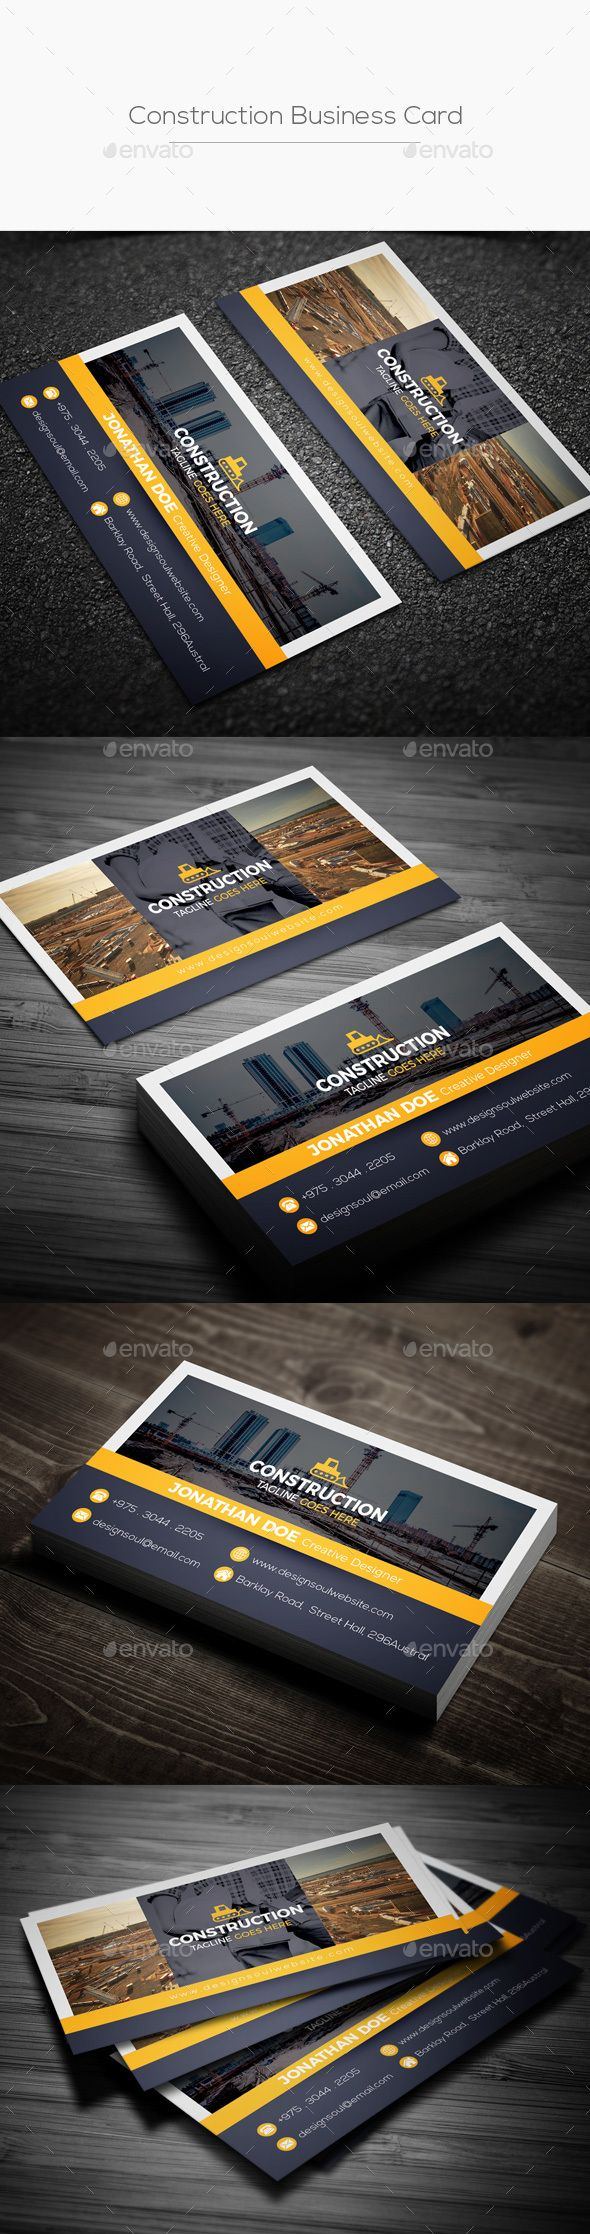 Construction business card construction business cards construction business card business cards print templates cheaphphosting Gallery